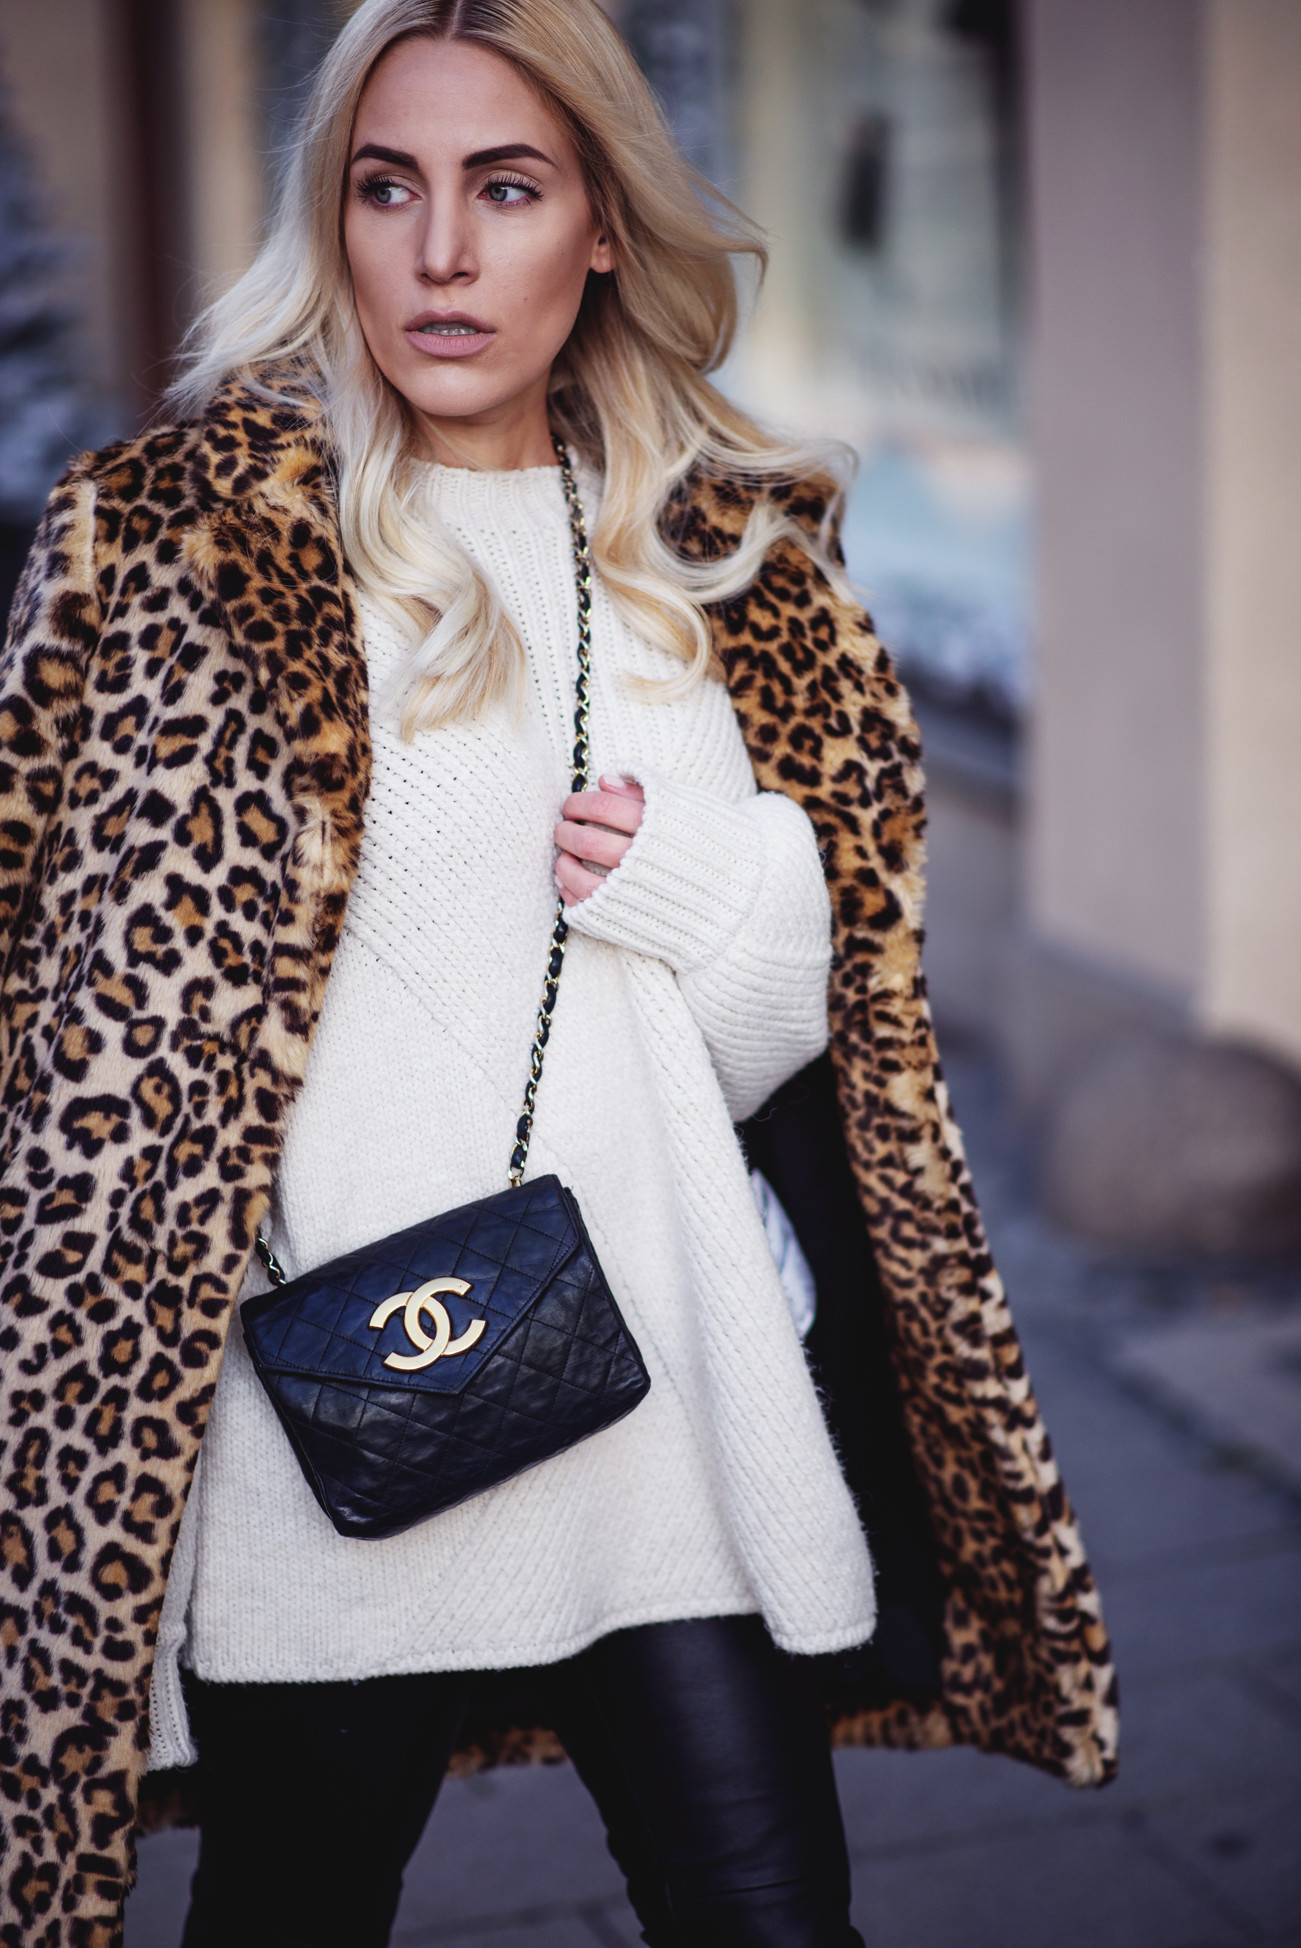 fashion-fashionblogger-blogger-chanel-winter-cozy-knitwear-leo-sequinsophia-5-dsc_6217